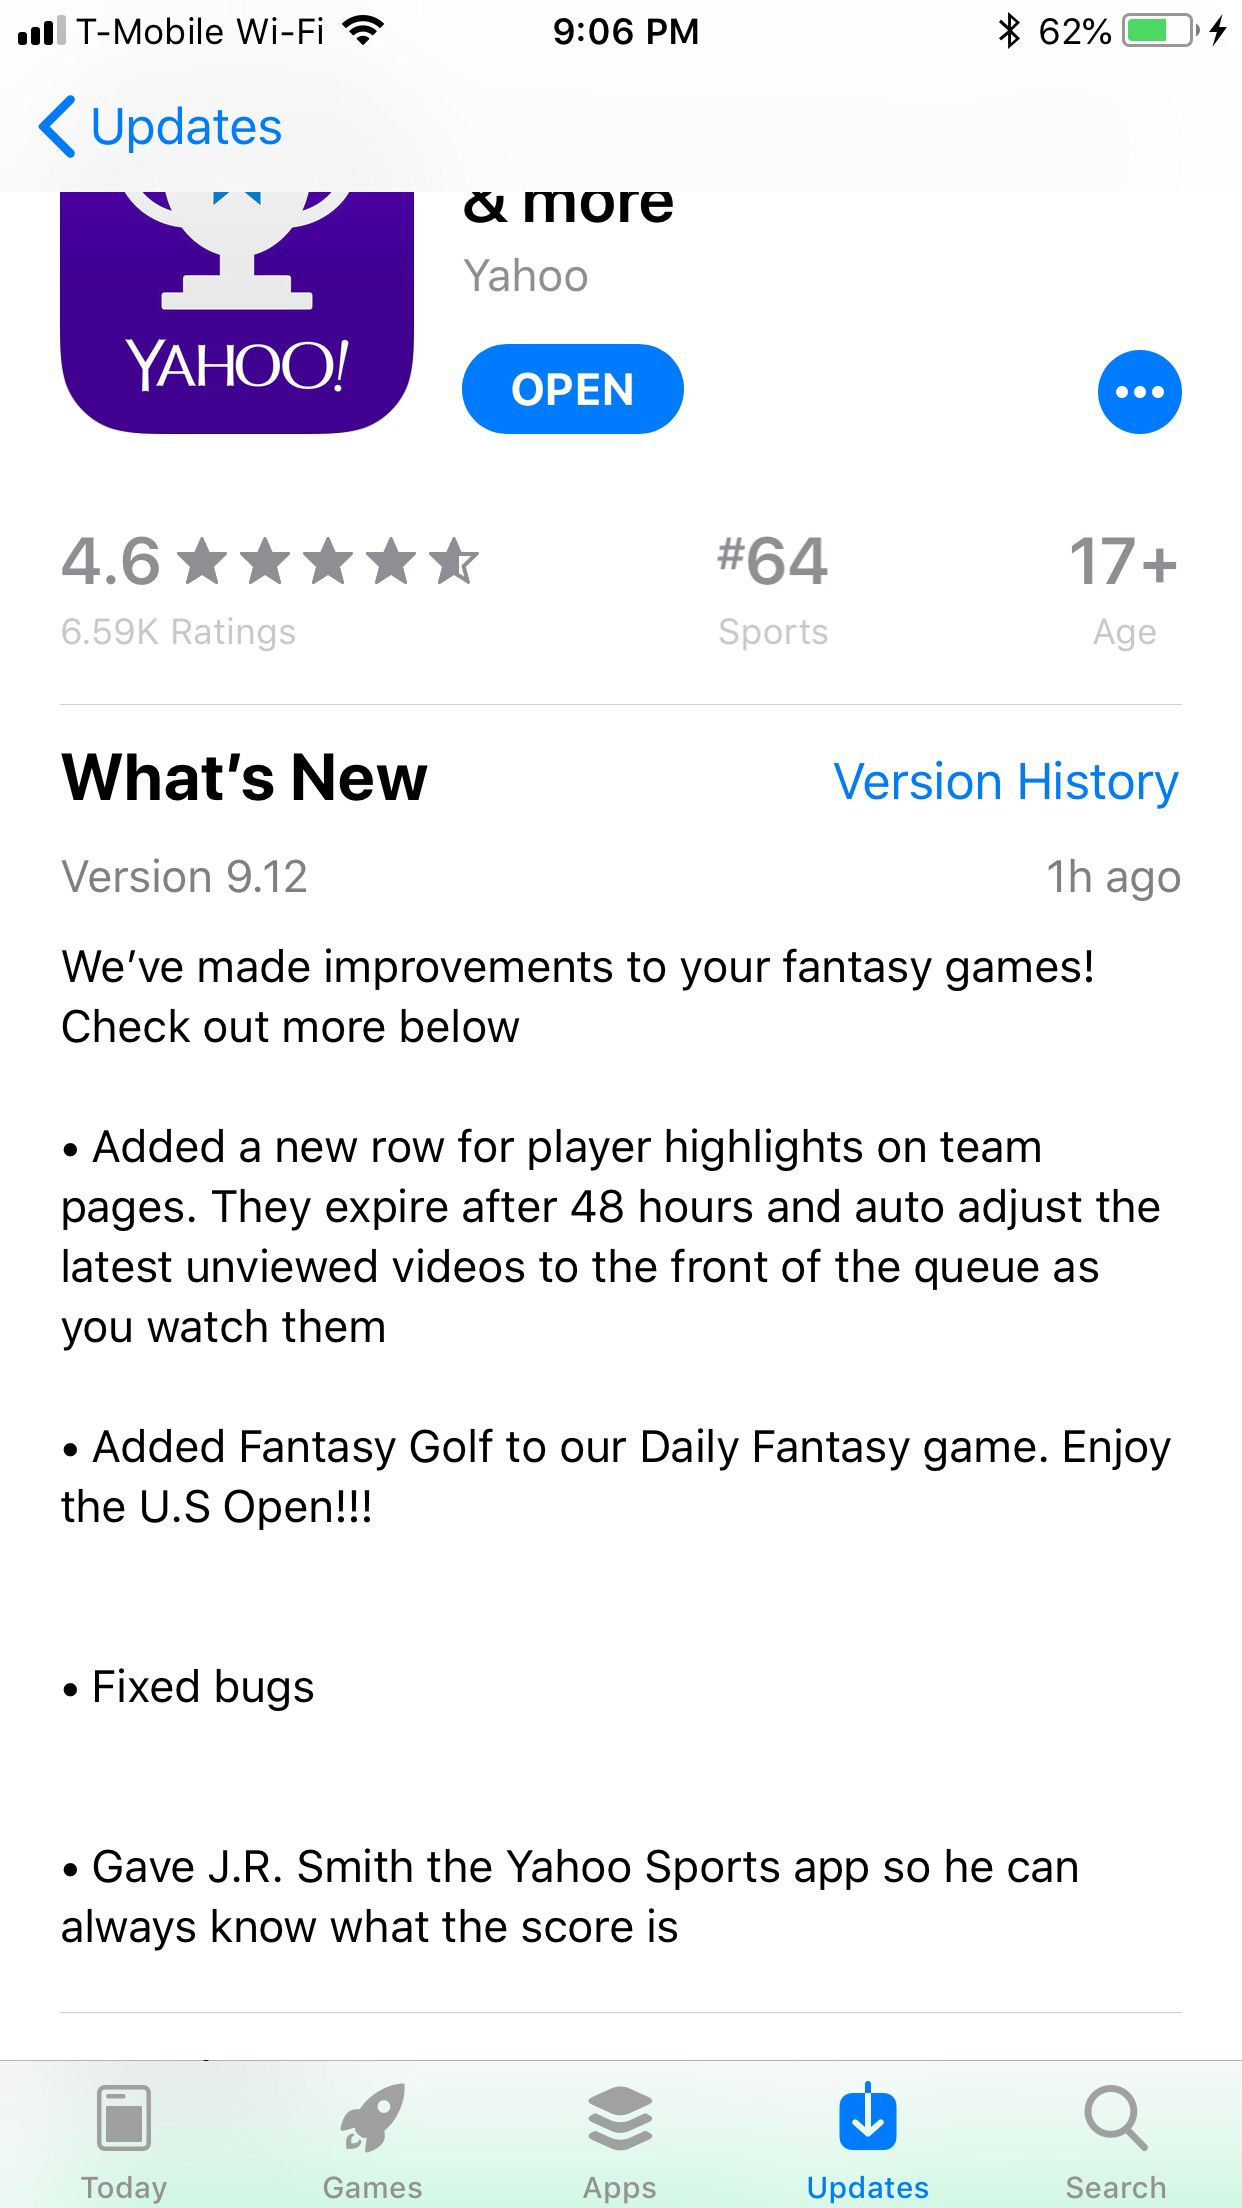 Latest Yahoo! Update  Check the last update note